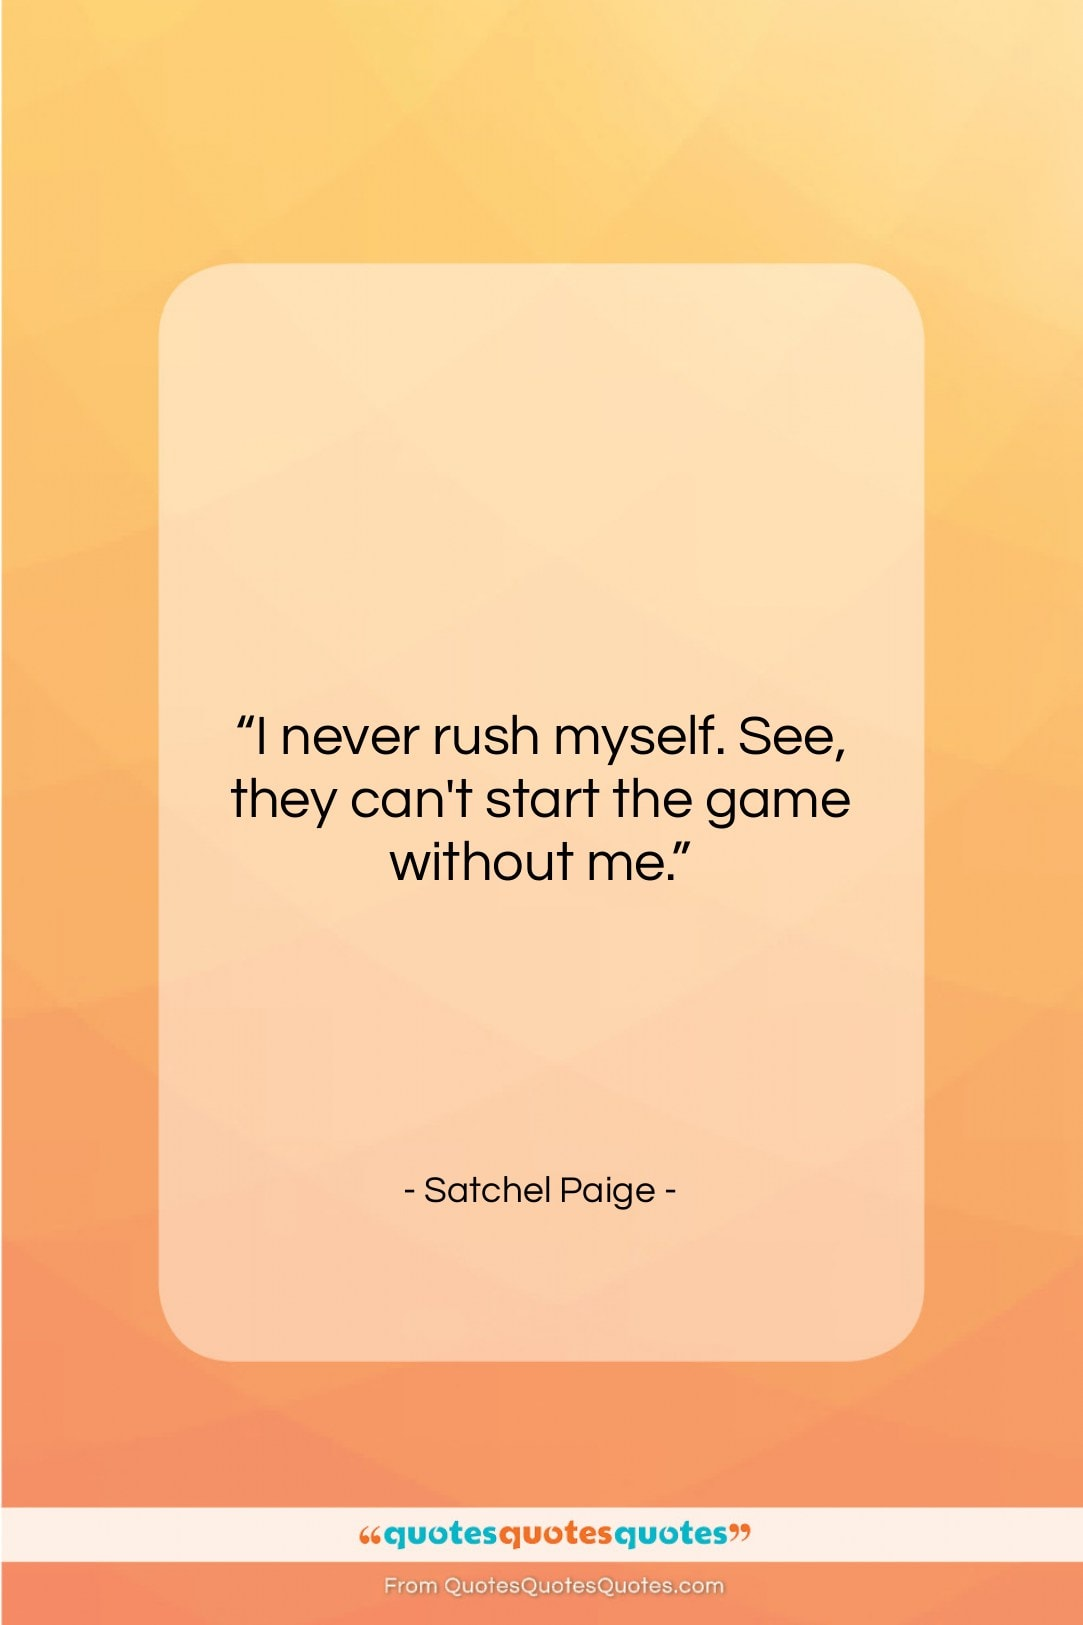 """Satchel Paige quote: """"I never rush myself. See, they can't…""""- at QuotesQuotesQuotes.com"""